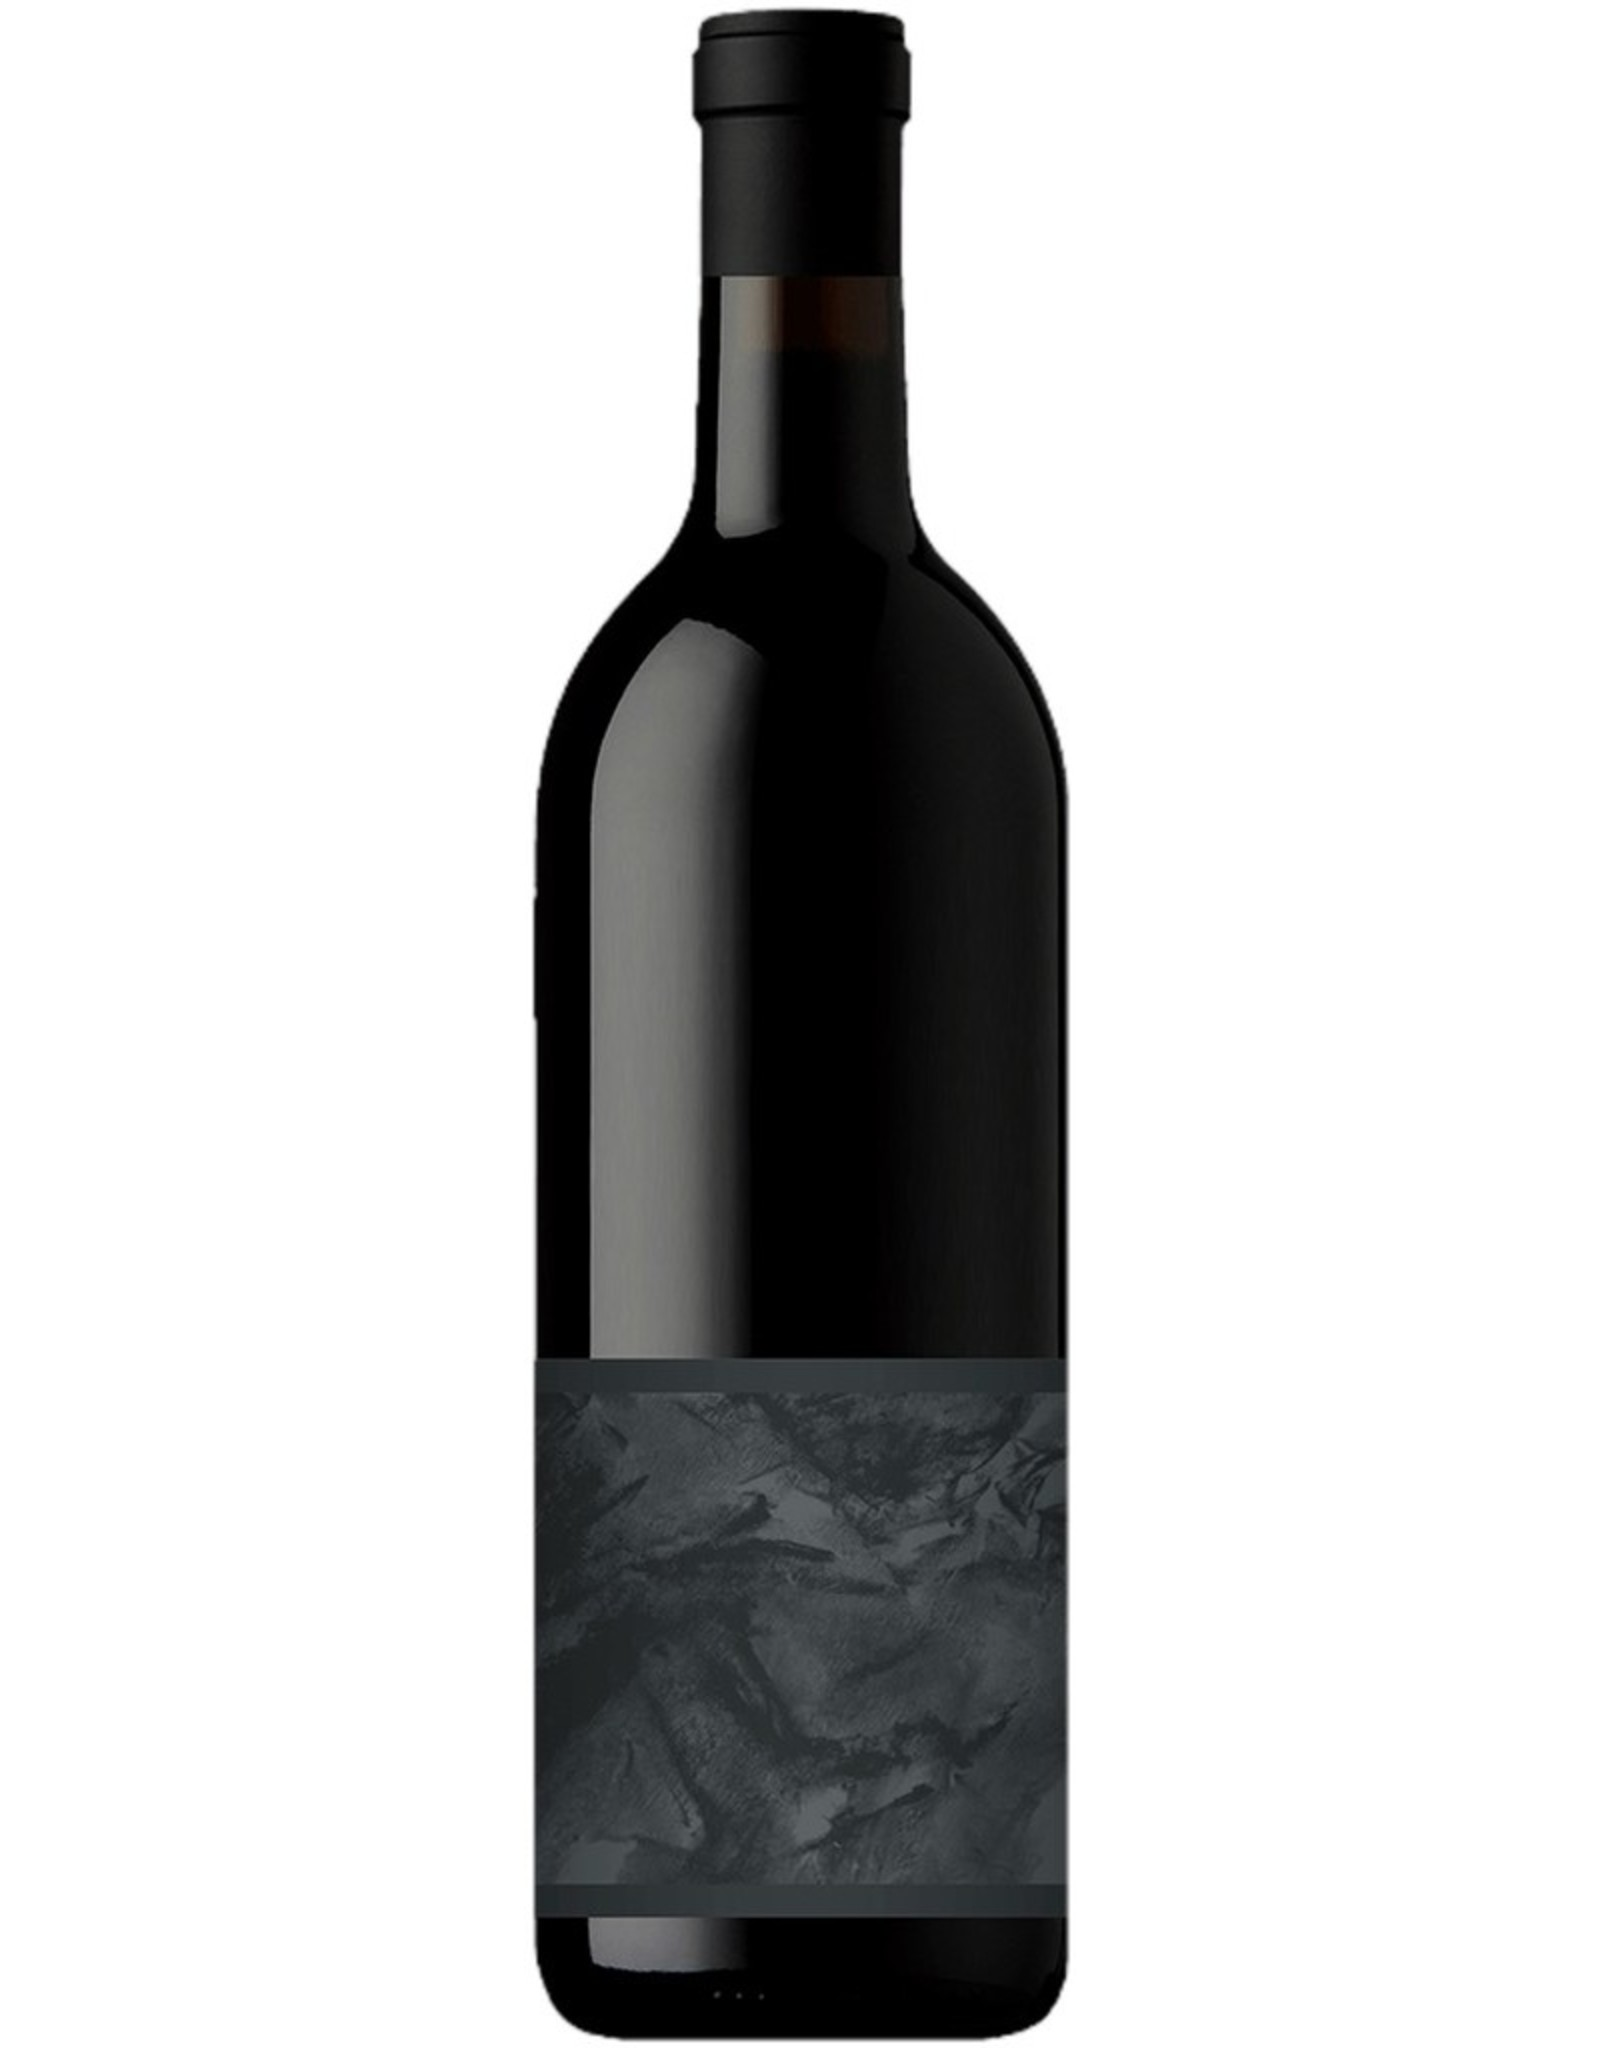 """Red Wine 2016, Linne Calodo """"Problem Child"""" 77% Zinfandel, Red Blend, Willow Creek District, Paso Robles, California, 15.7% Alc, CT95"""